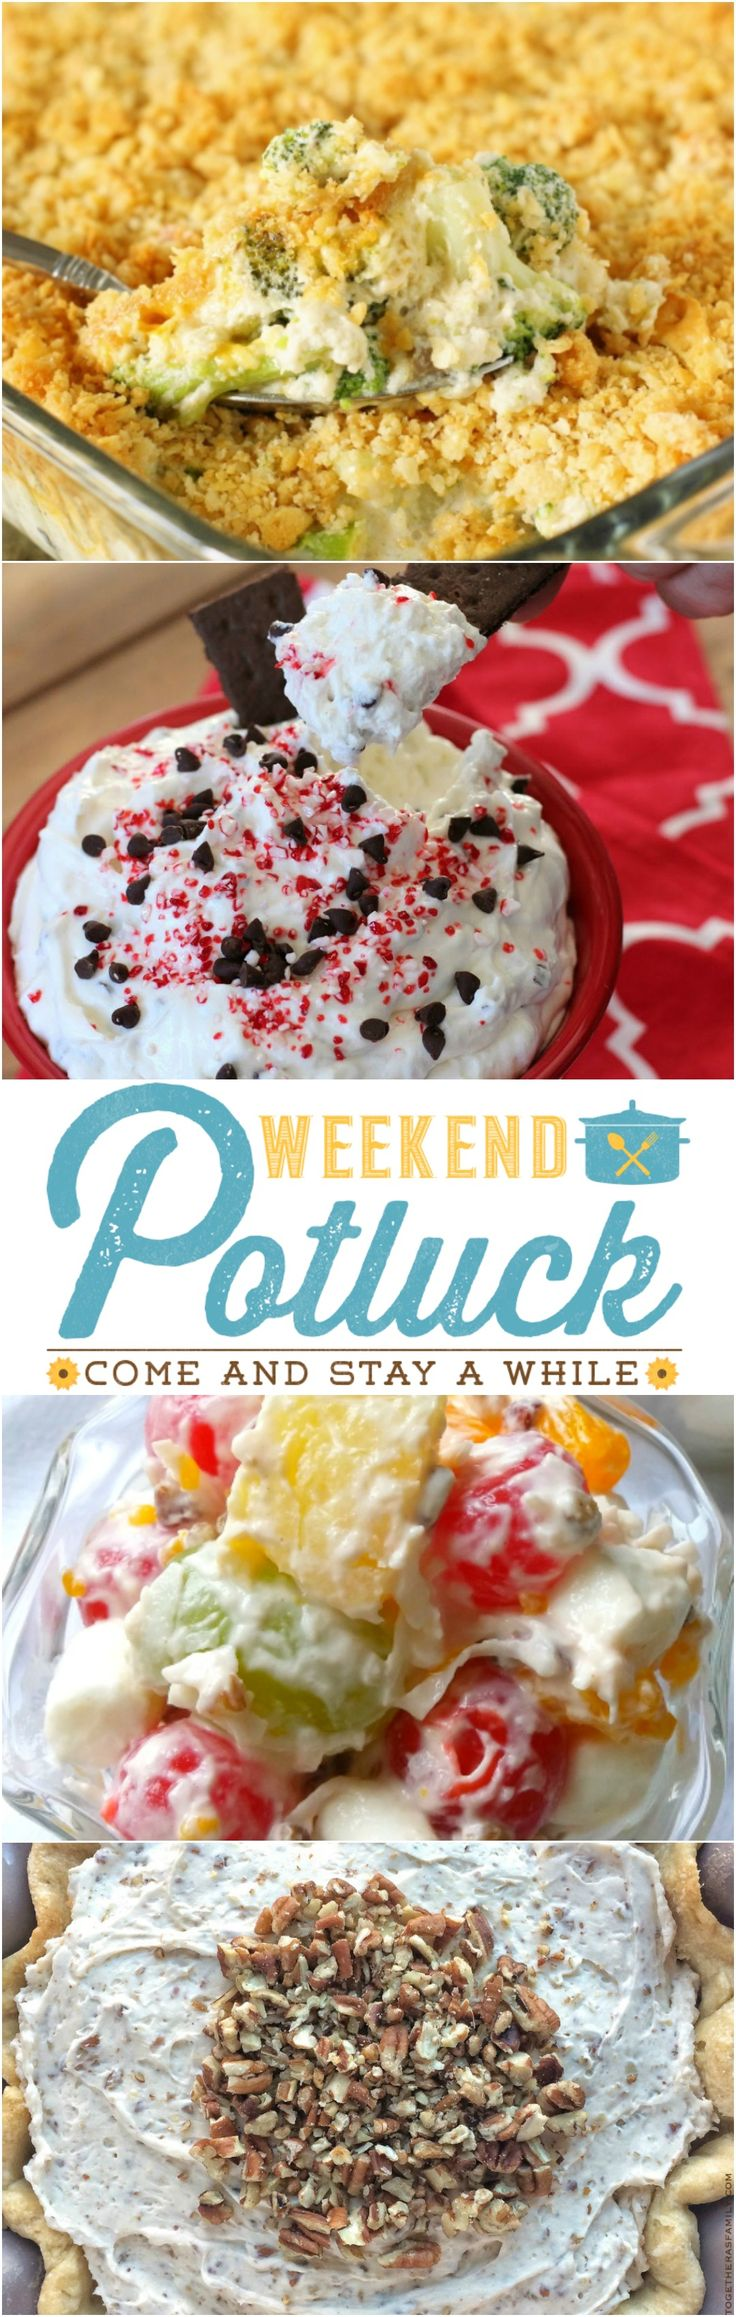 Weekend Potluck at The Country Cook! Featured recipes include: Creamy Broccoli Casserole, Peppermint Mocha Cheesecake Dip, Ambrosia Fruit Salad, Creamy Pecan Pie